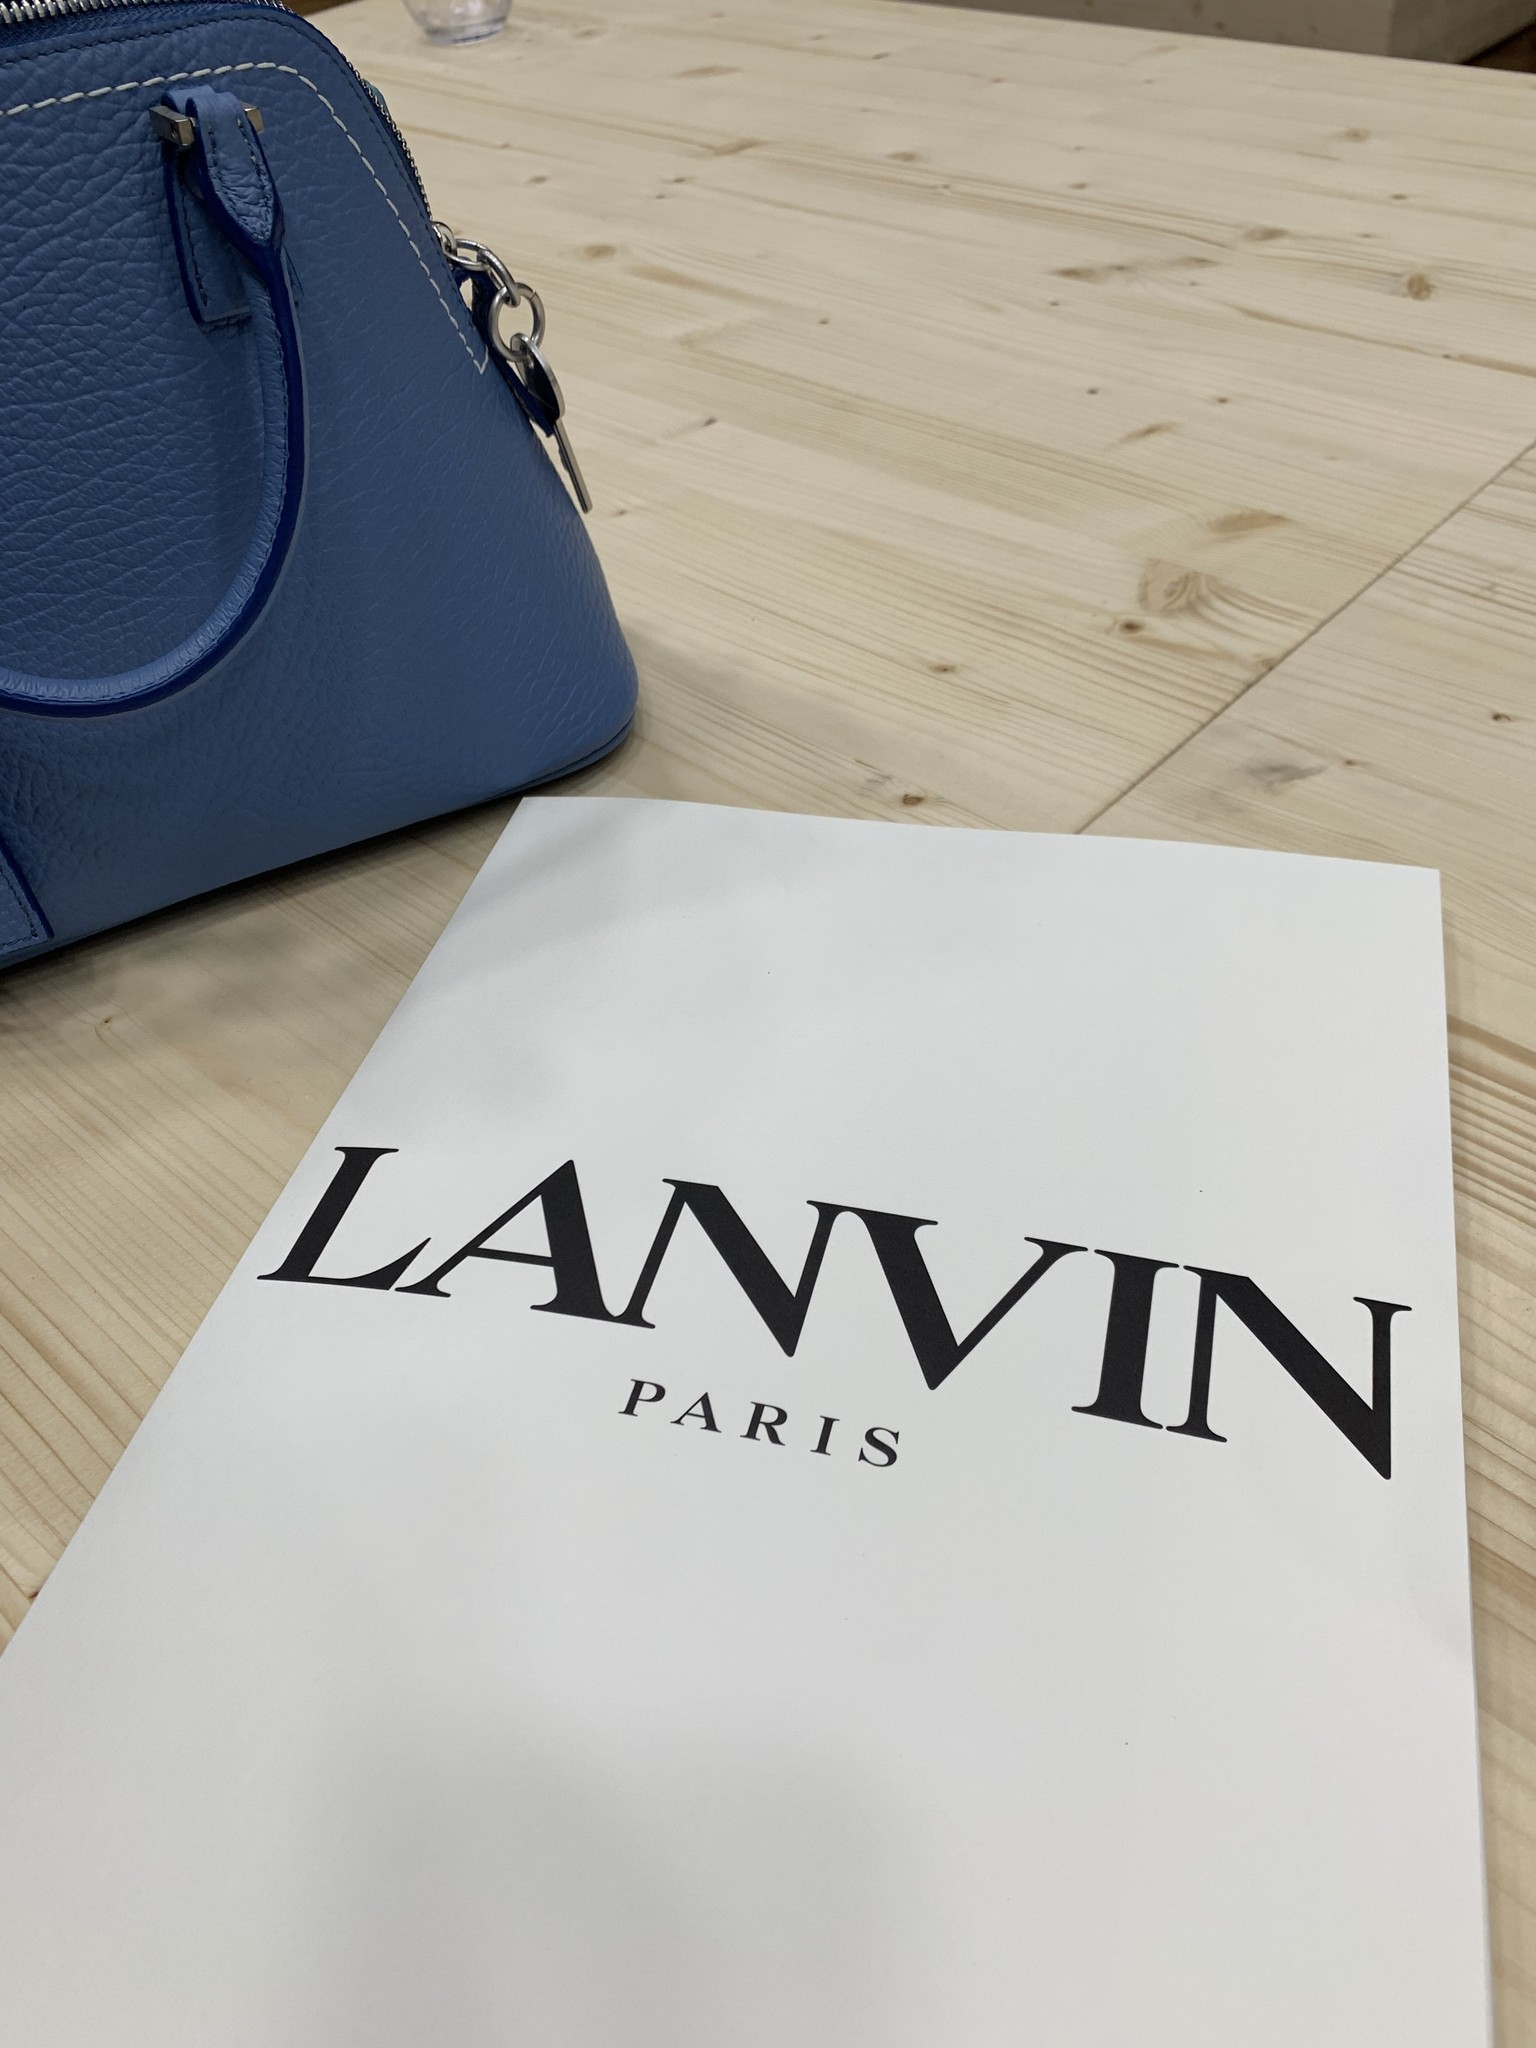 LANVIN - AN UTOPIAN RESORT